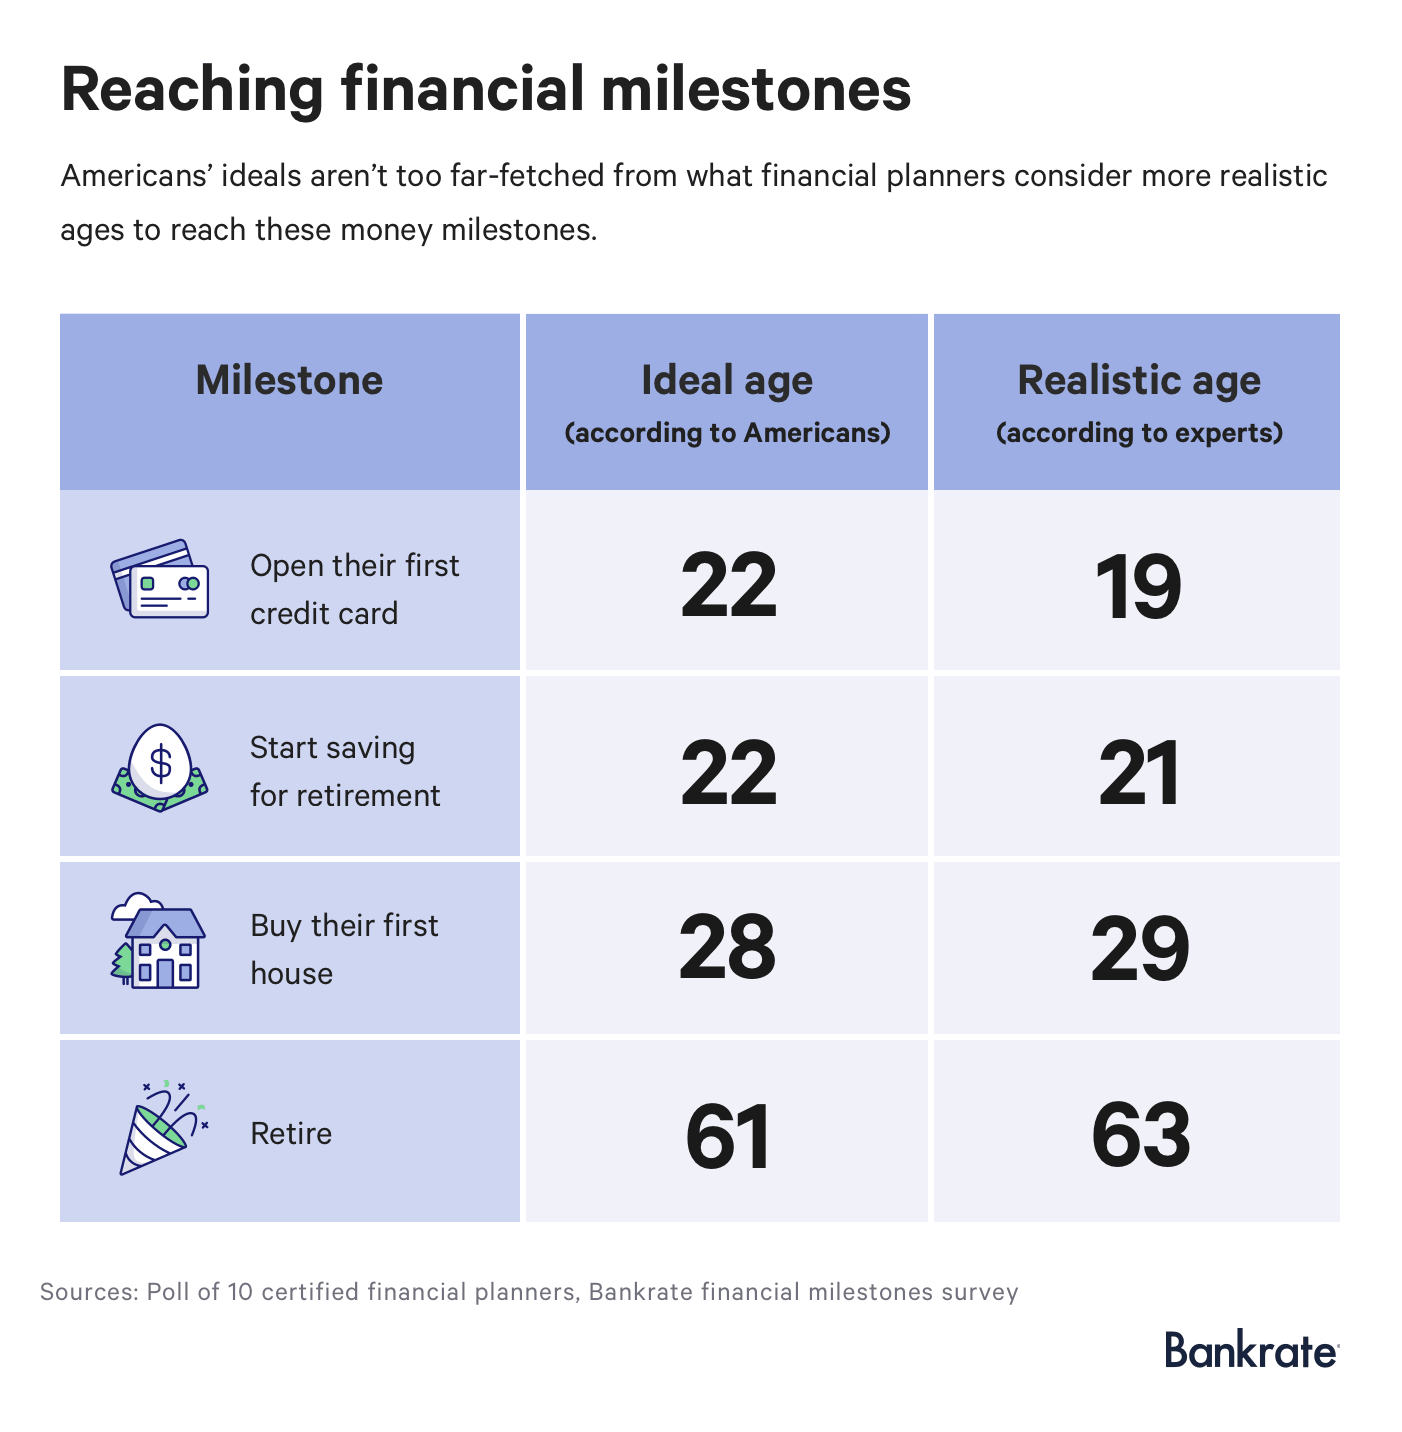 How Americans' ideal ages to reach financial milestones compare to financial planners' suggested realistic ages